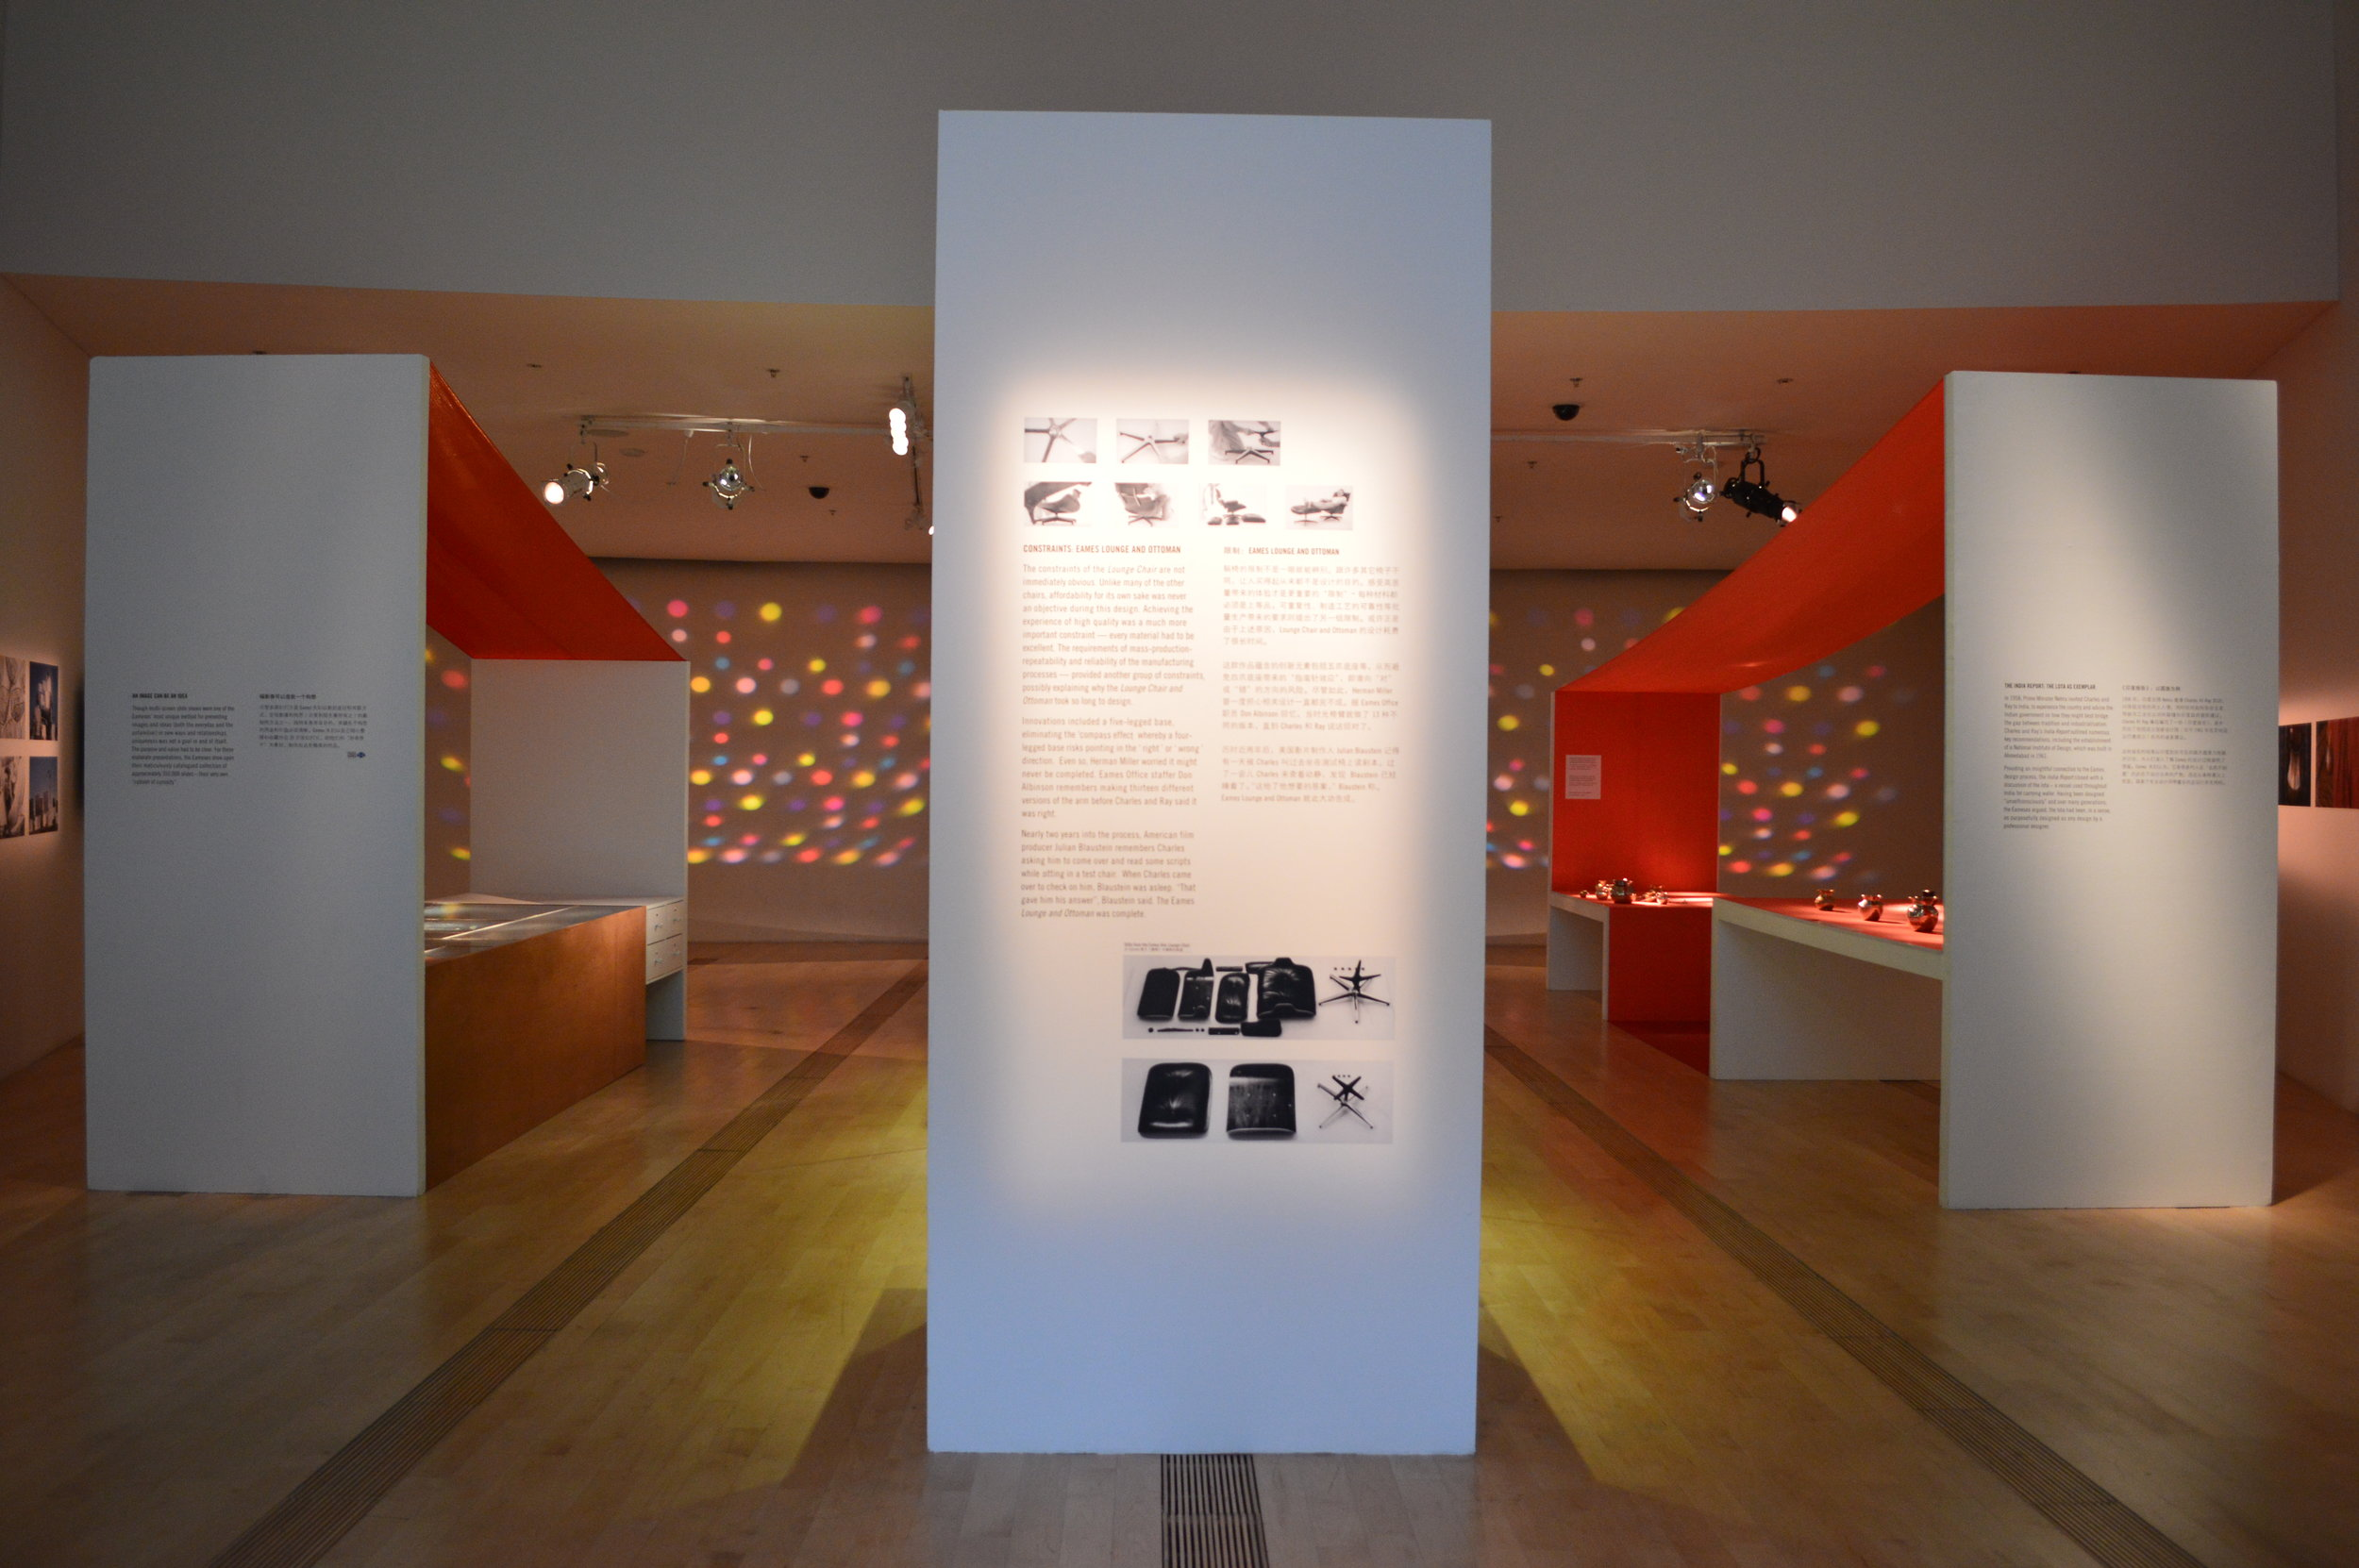 Essential EAMES: A Herman Miller Exhibition